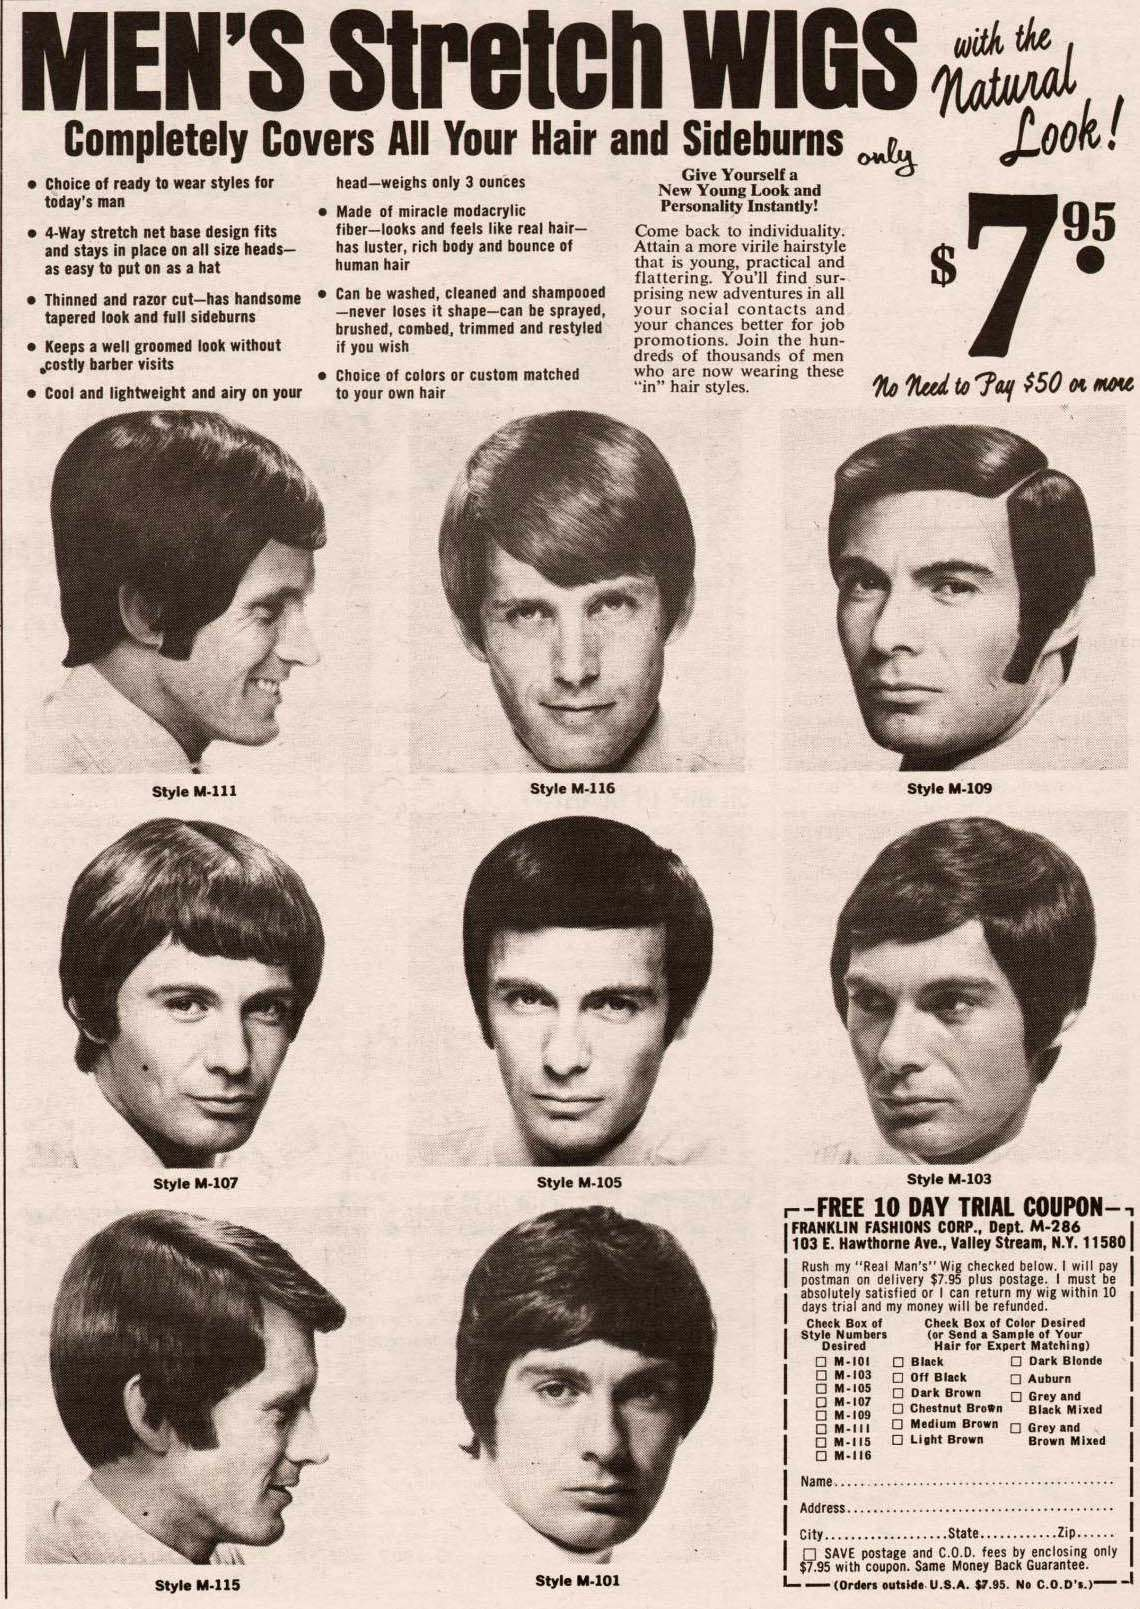 Vintage Hair Adverts 1960s 70s Products Styles And Tragic Cuts